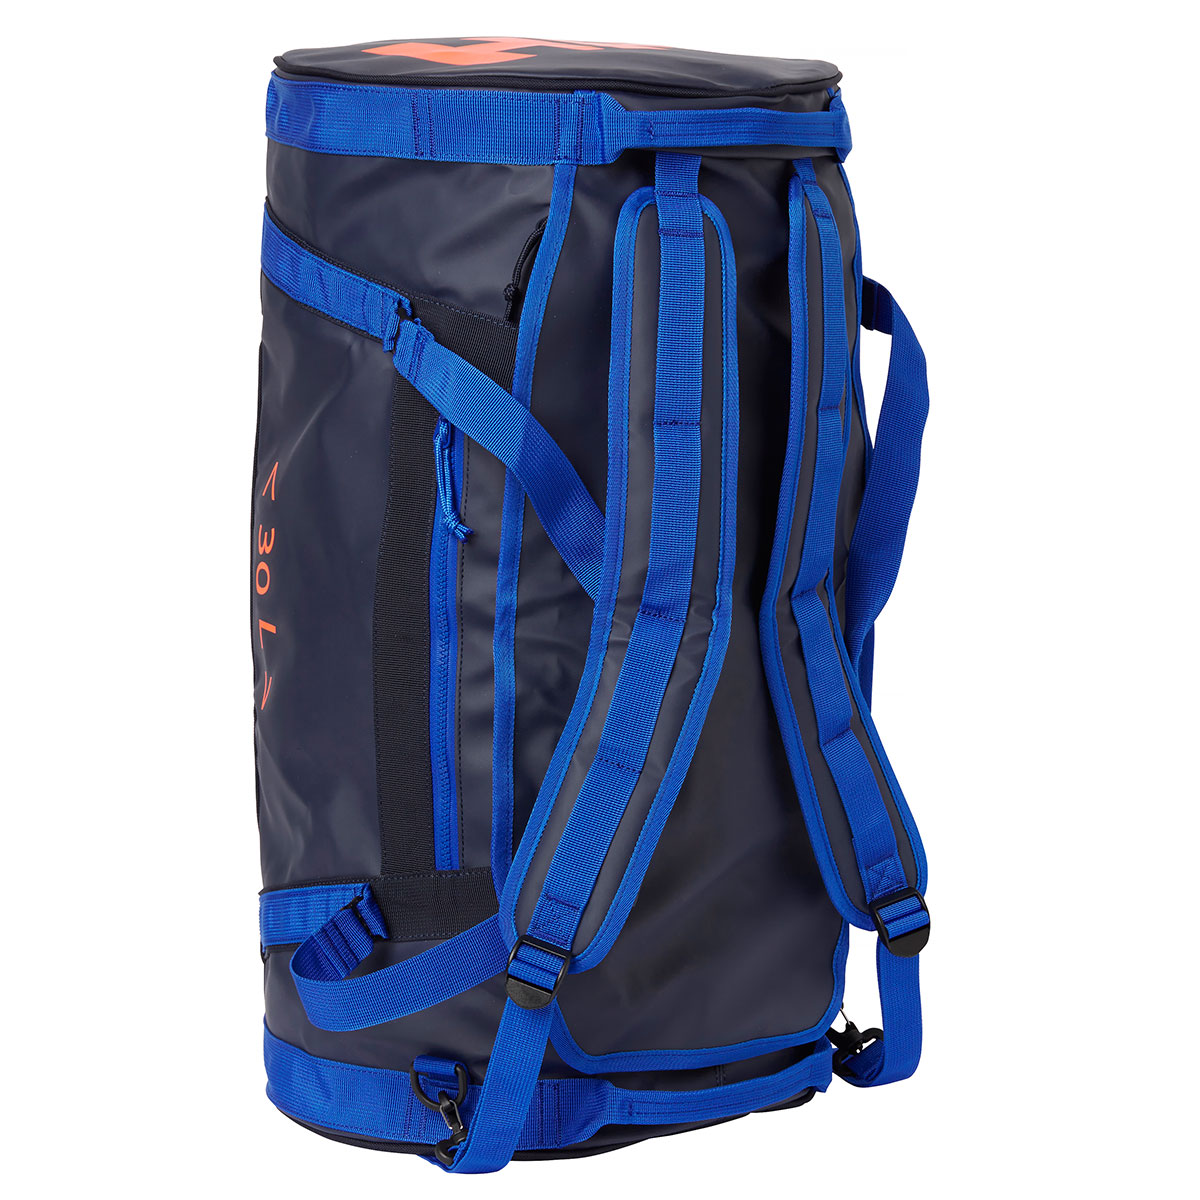 f34487ce0a Helly Hansen 2019 HH Duffel Bag 2 30L Holdall Waterproof Durable 25 ...